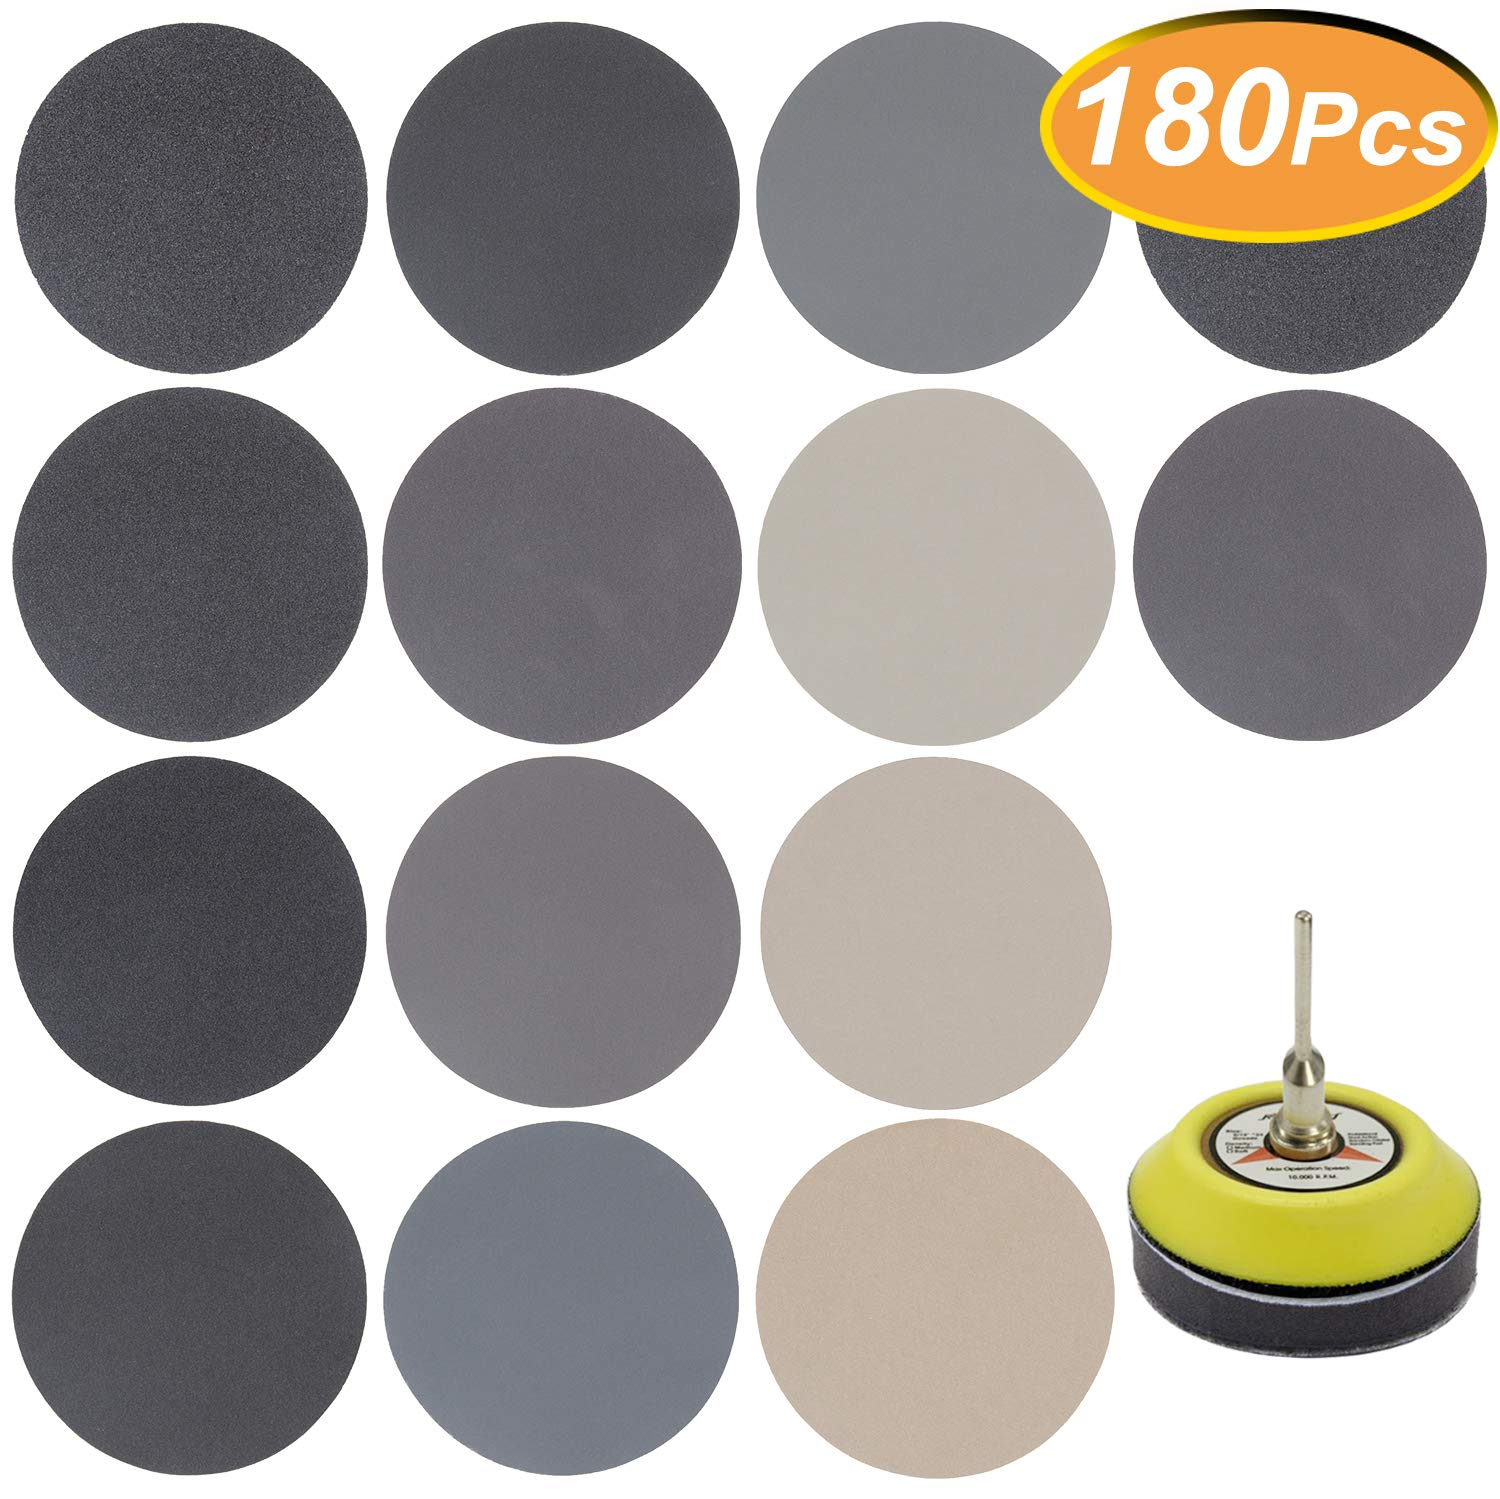 GOH DODD Wet Dry Water Sander Sheets 3000//5000//7000//10000 Grits 3 Inch Grinding Abrasive Sanding Disc for Wood Furniture Finishing Metal Sanding and Mirror Jewelry Car Polishing 40 PCS Sandpaper